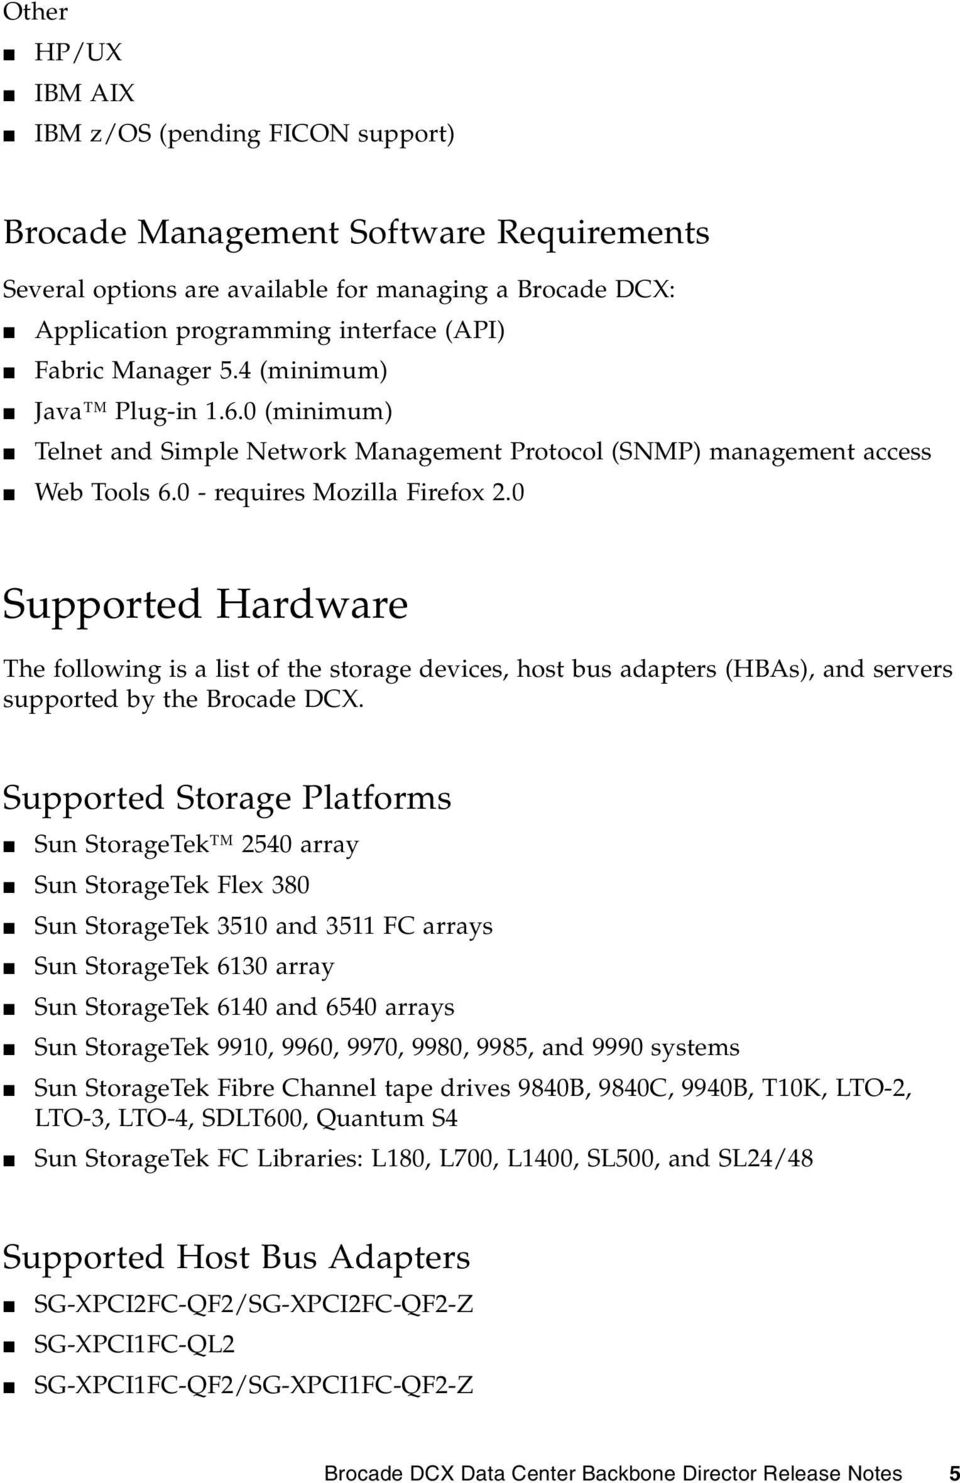 0 Supported Hardware The following is a list of the storage devices, host bus adapters (HBAs), and servers supported by the Brocade DCX.